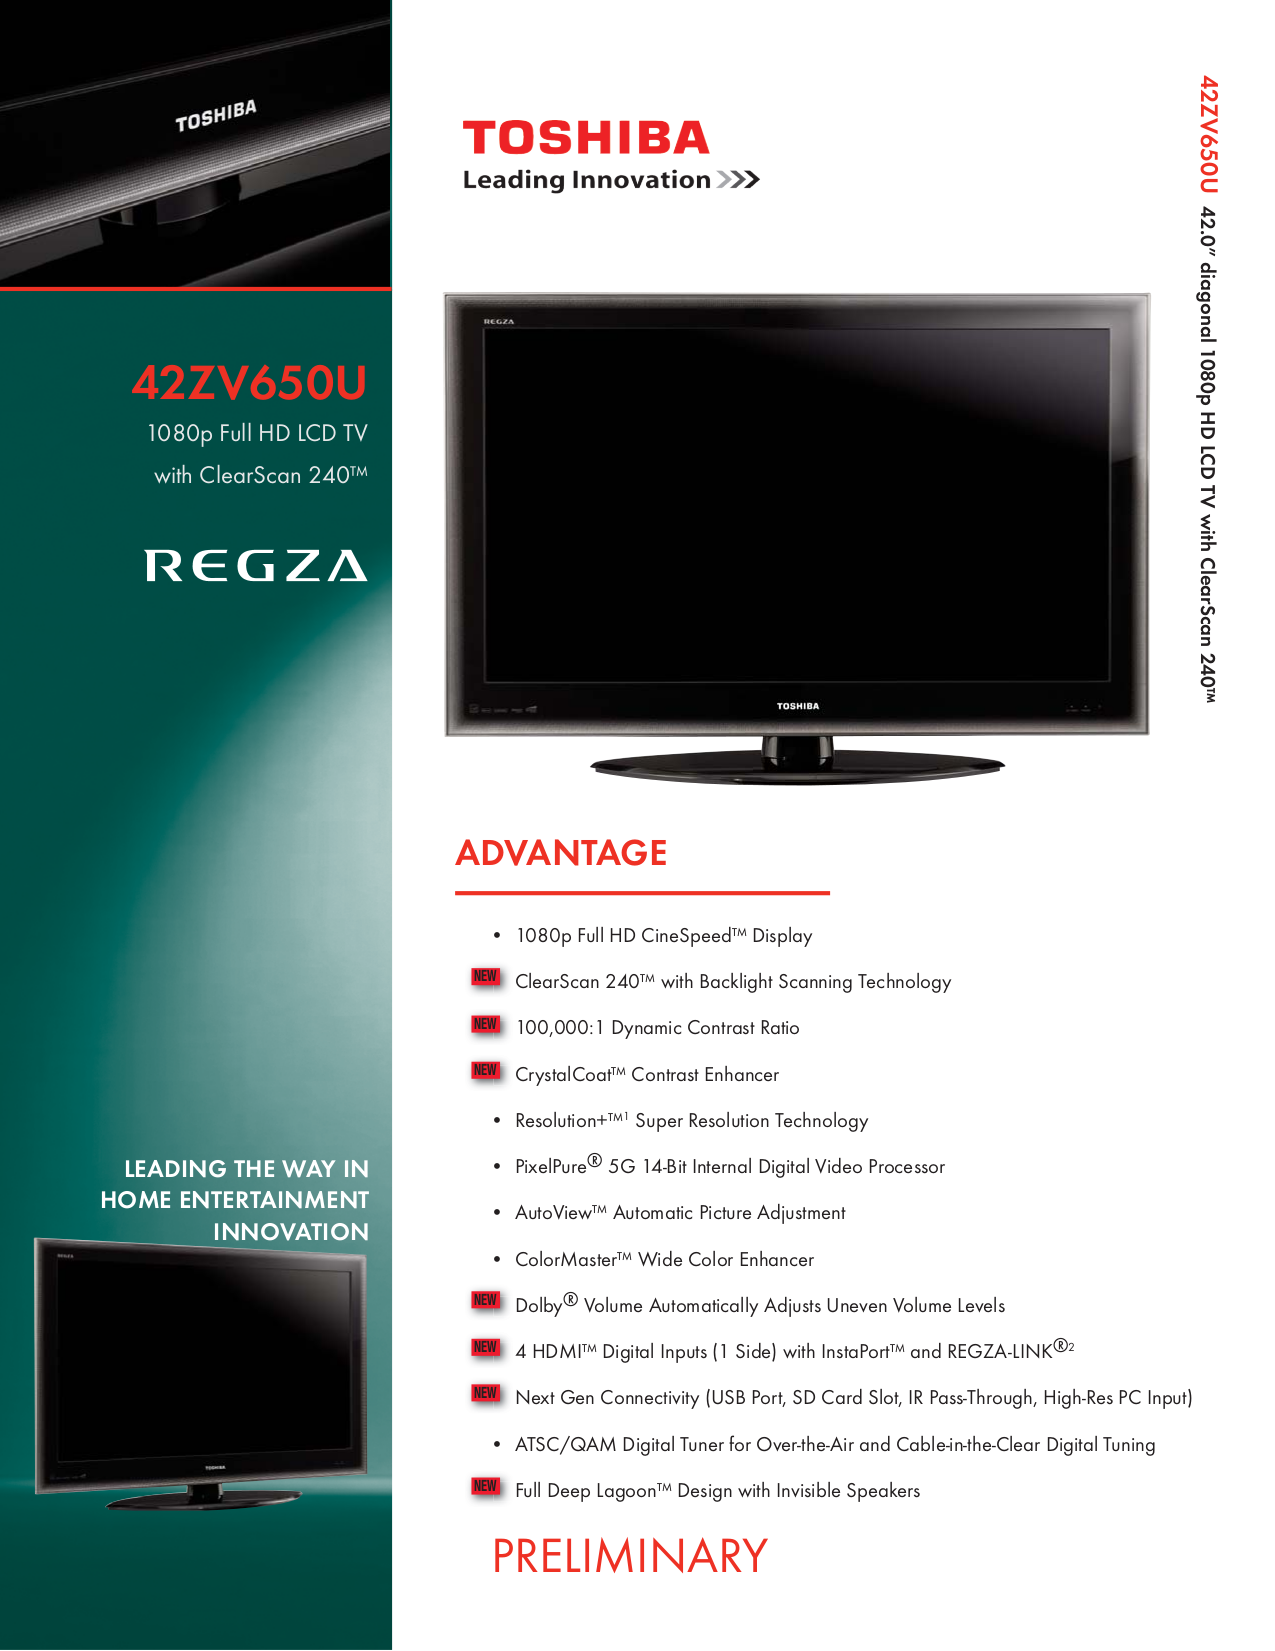 toshiba hdtv manual user guide manual that easy to read u2022 rh wowomg co toshiba 39l4300u service manual toshiba 39l4300u service manual